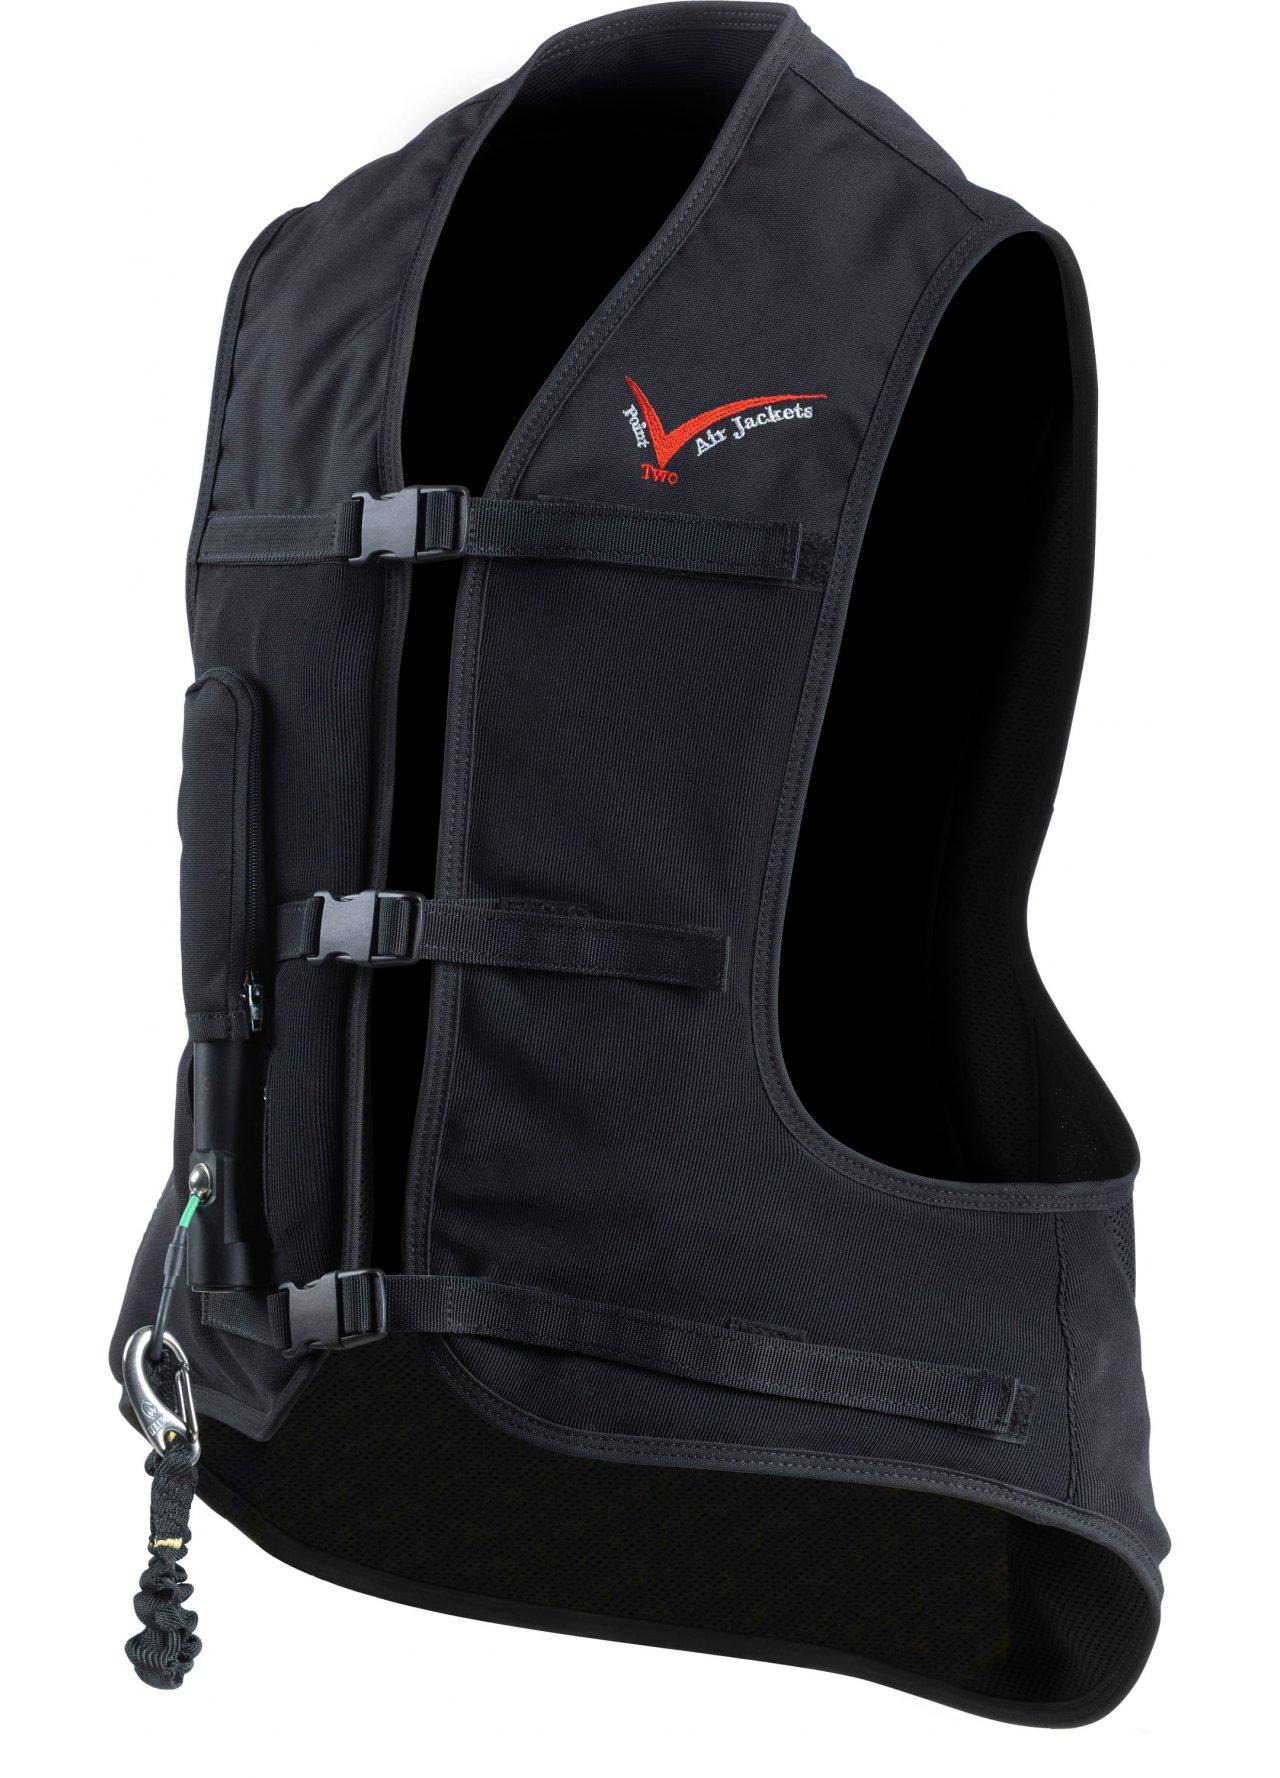 Horse Riding Equipment Body Protector Shoulder Pads